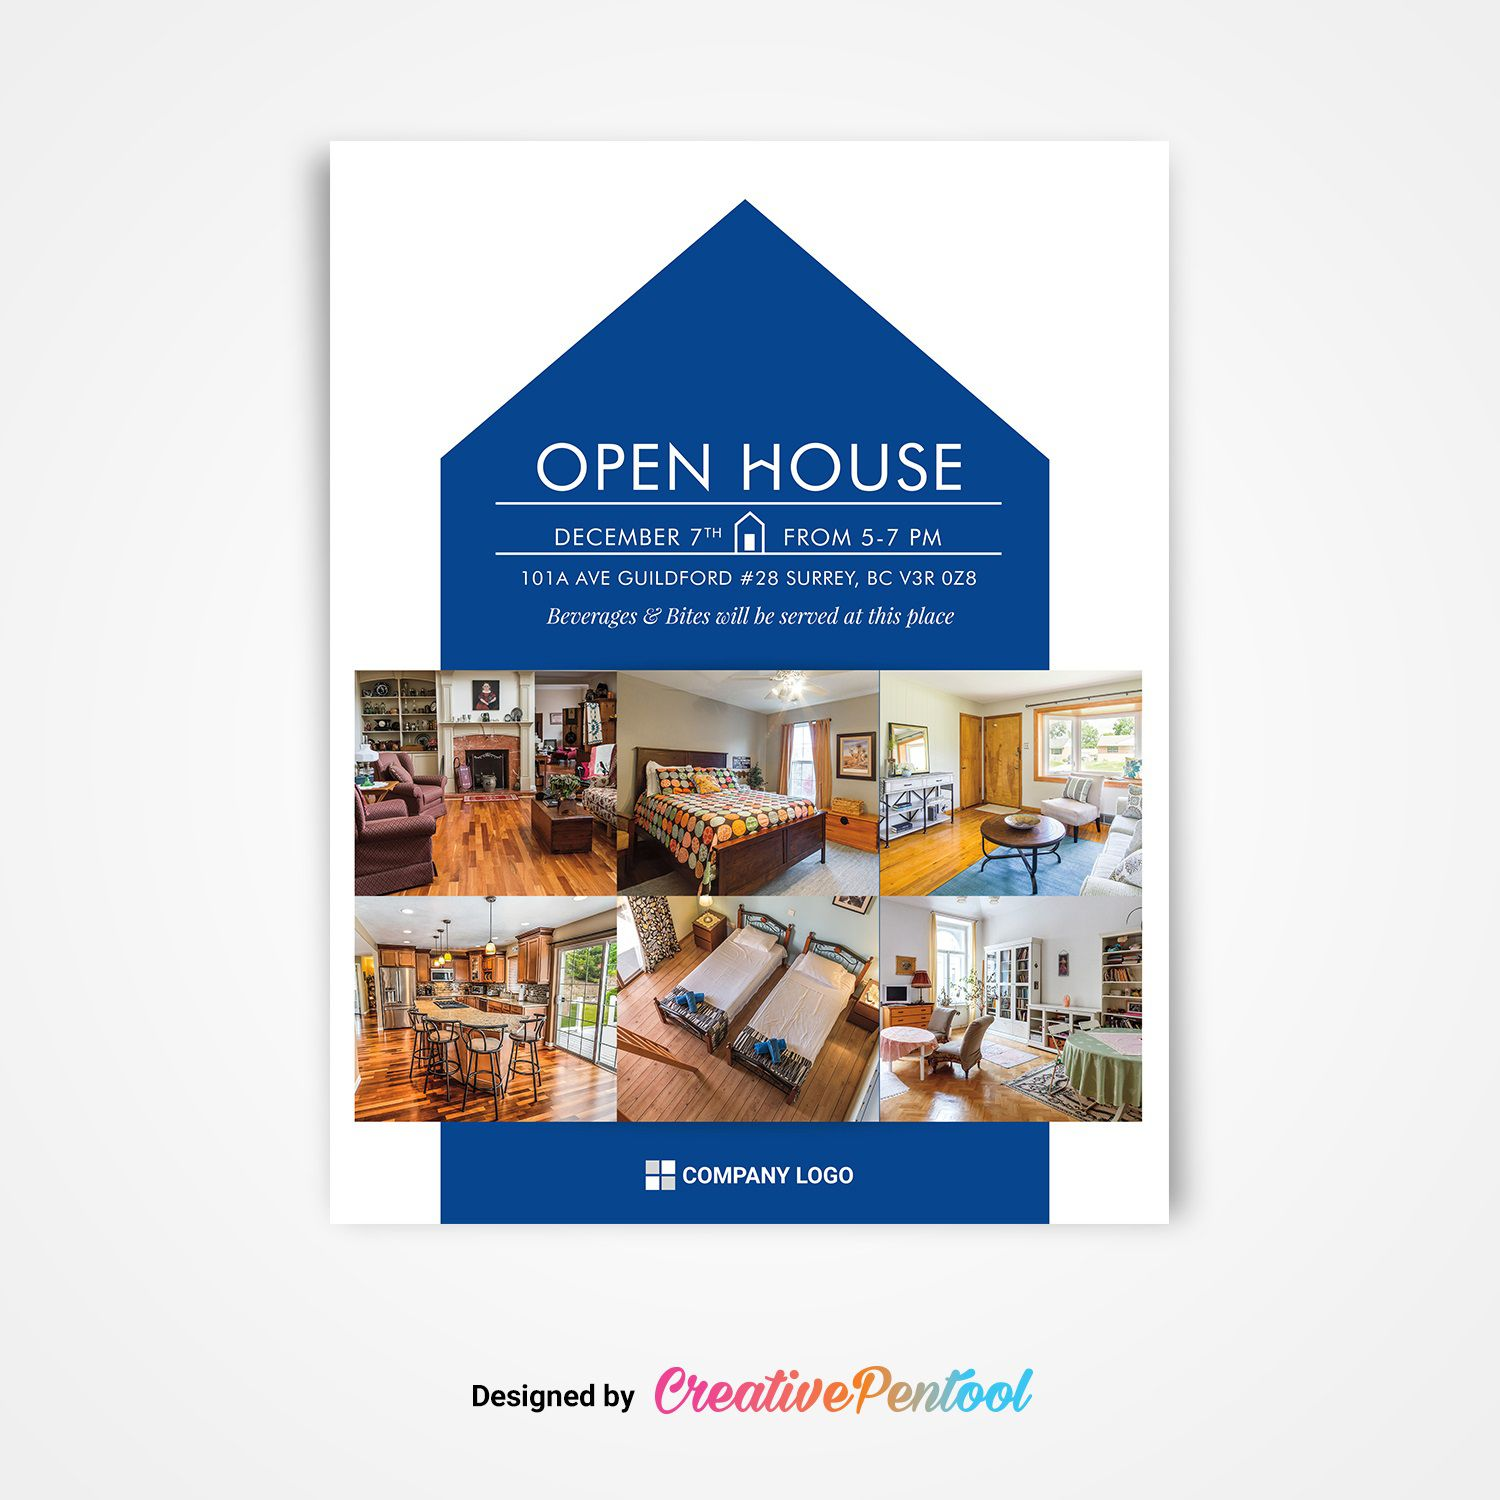 005 Simple Free Open House Flyer Template High Def  Microsoft WordFull